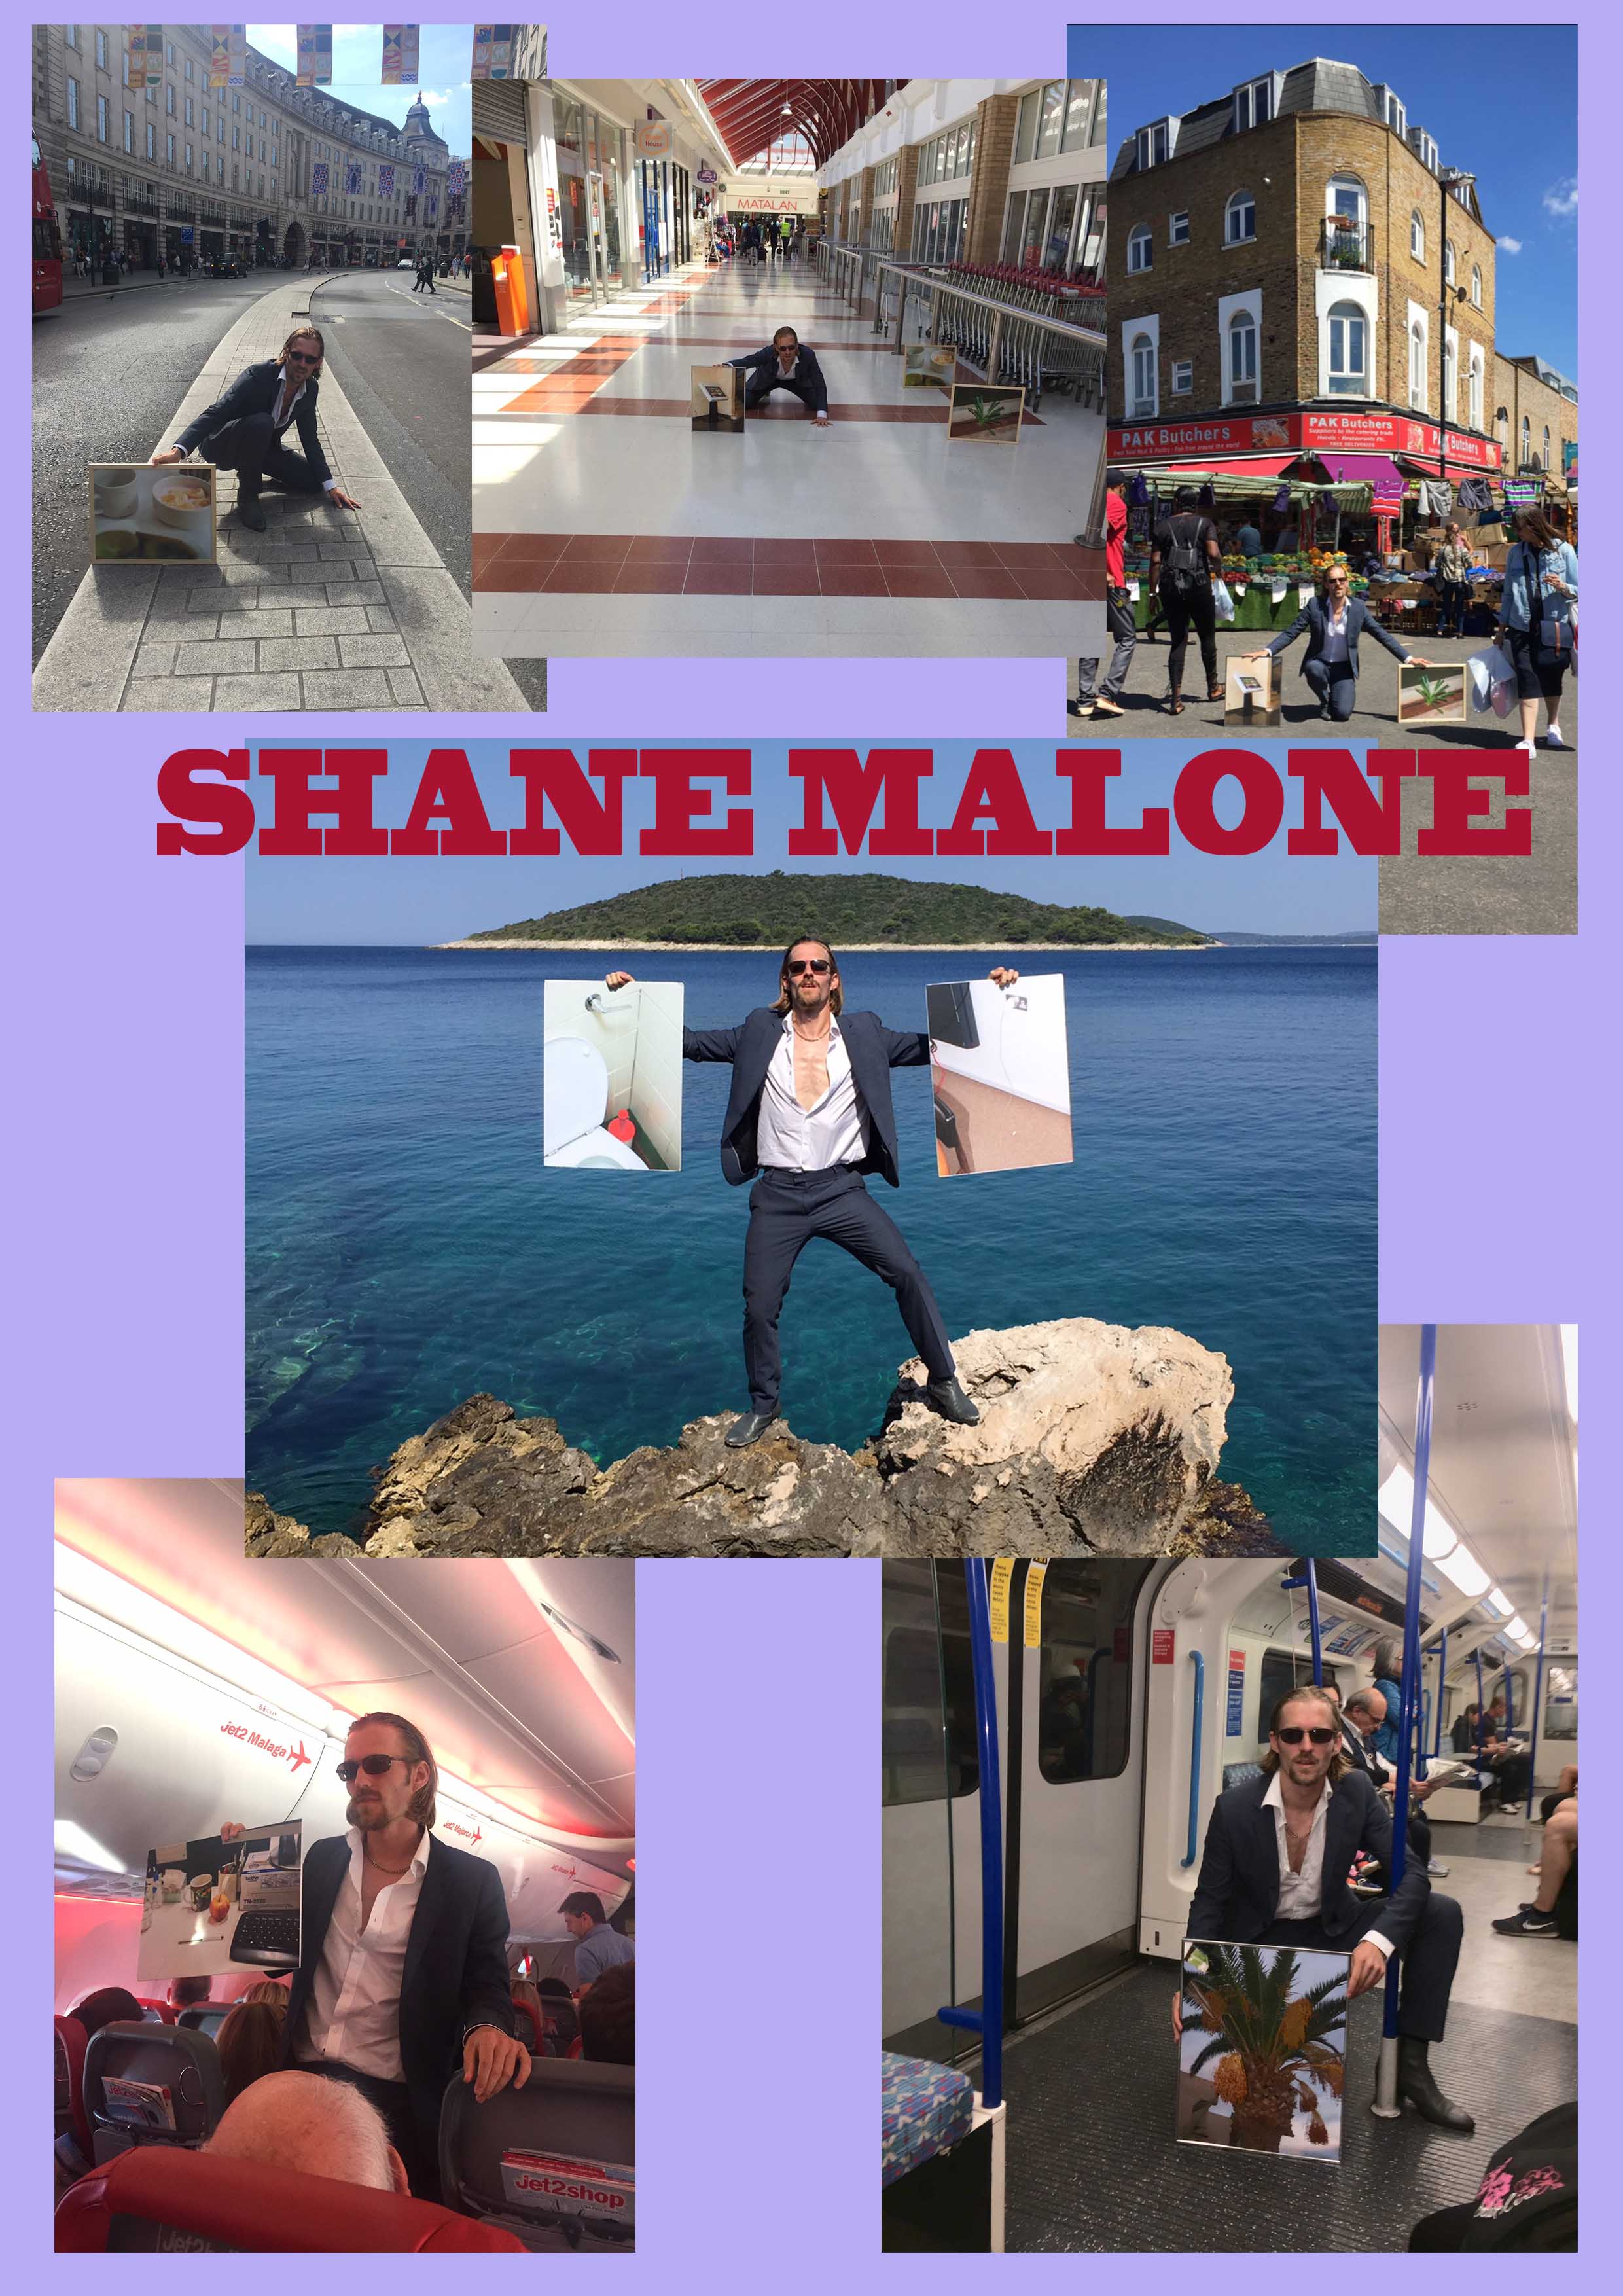 various pictures of the satirical character shane malone travelling around europe